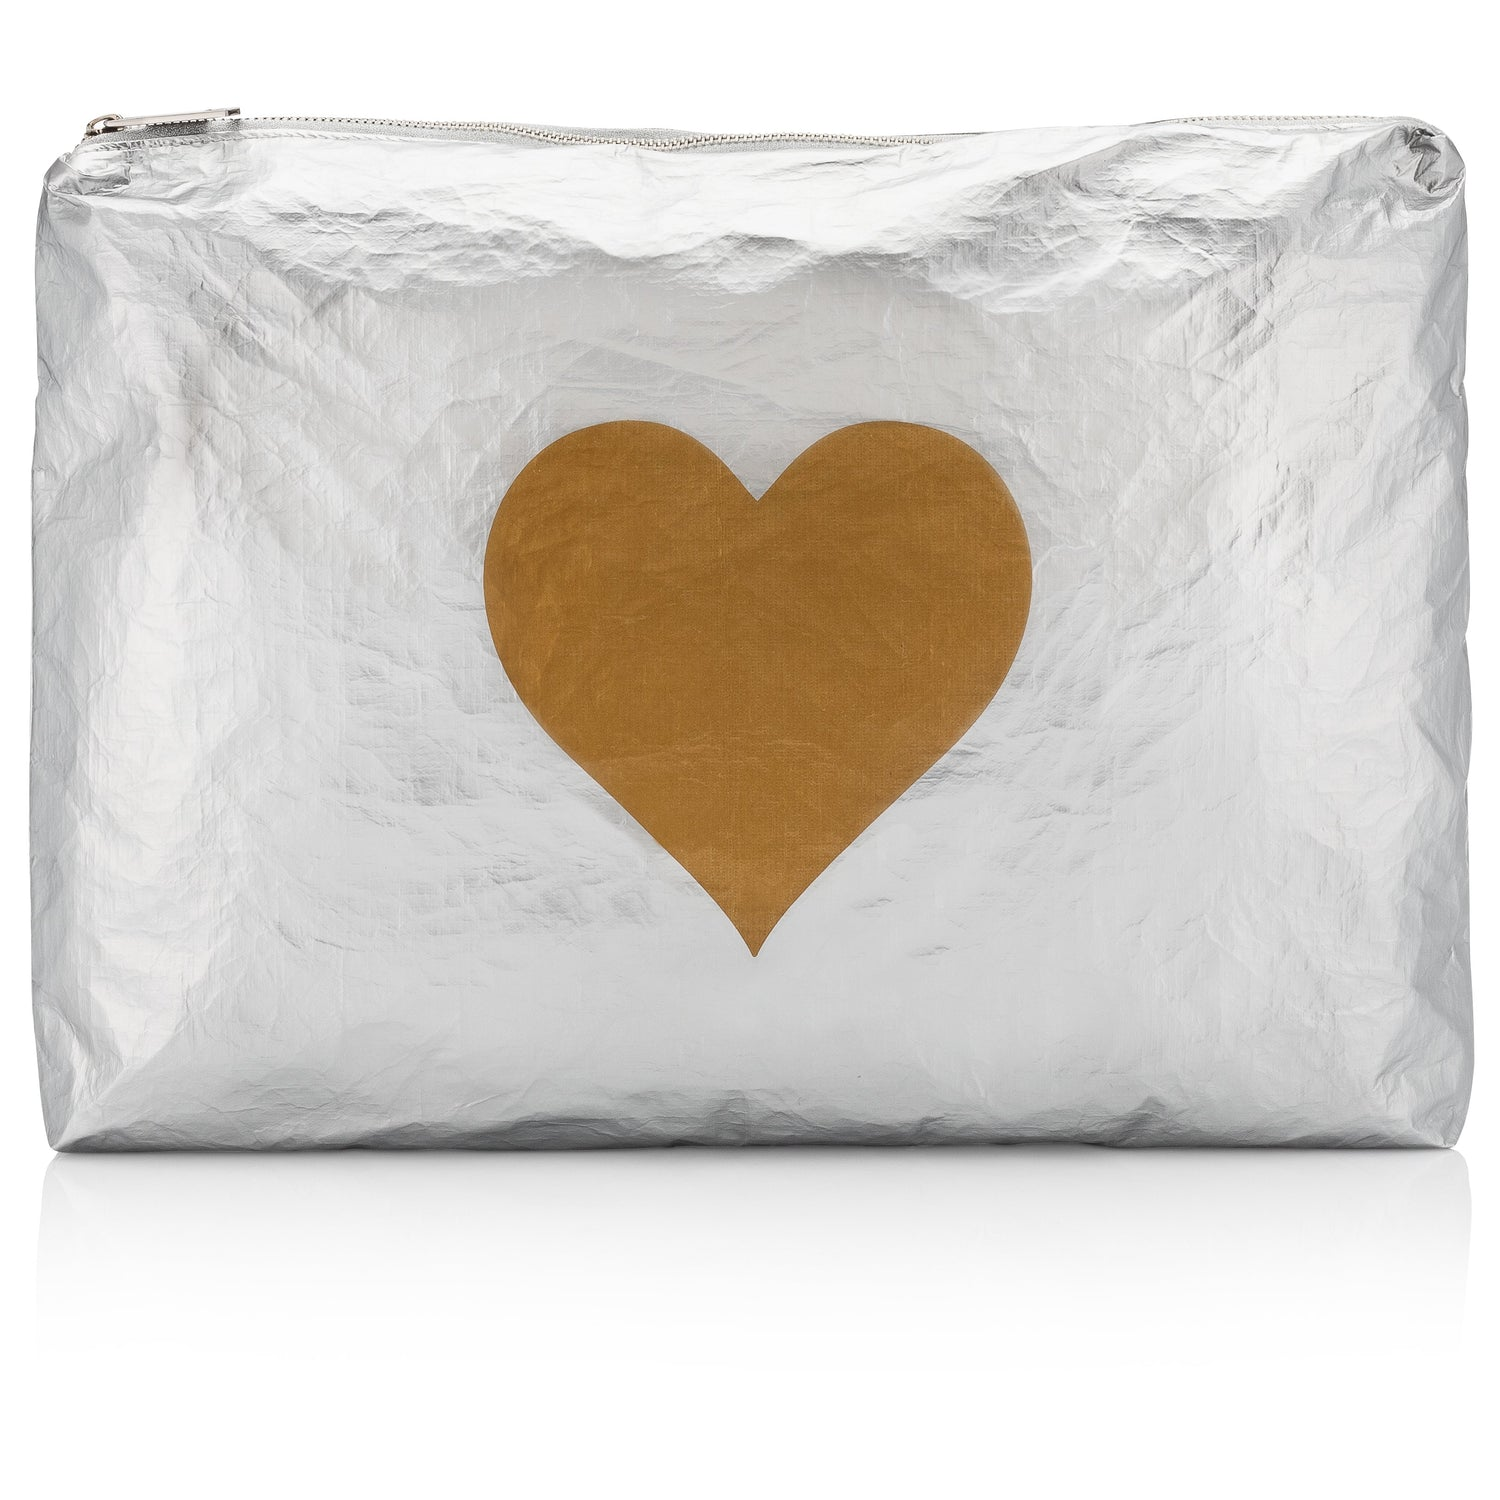 Jumbo Pack - Metallic Silver HLT Collection with a Metallic Gold Heart